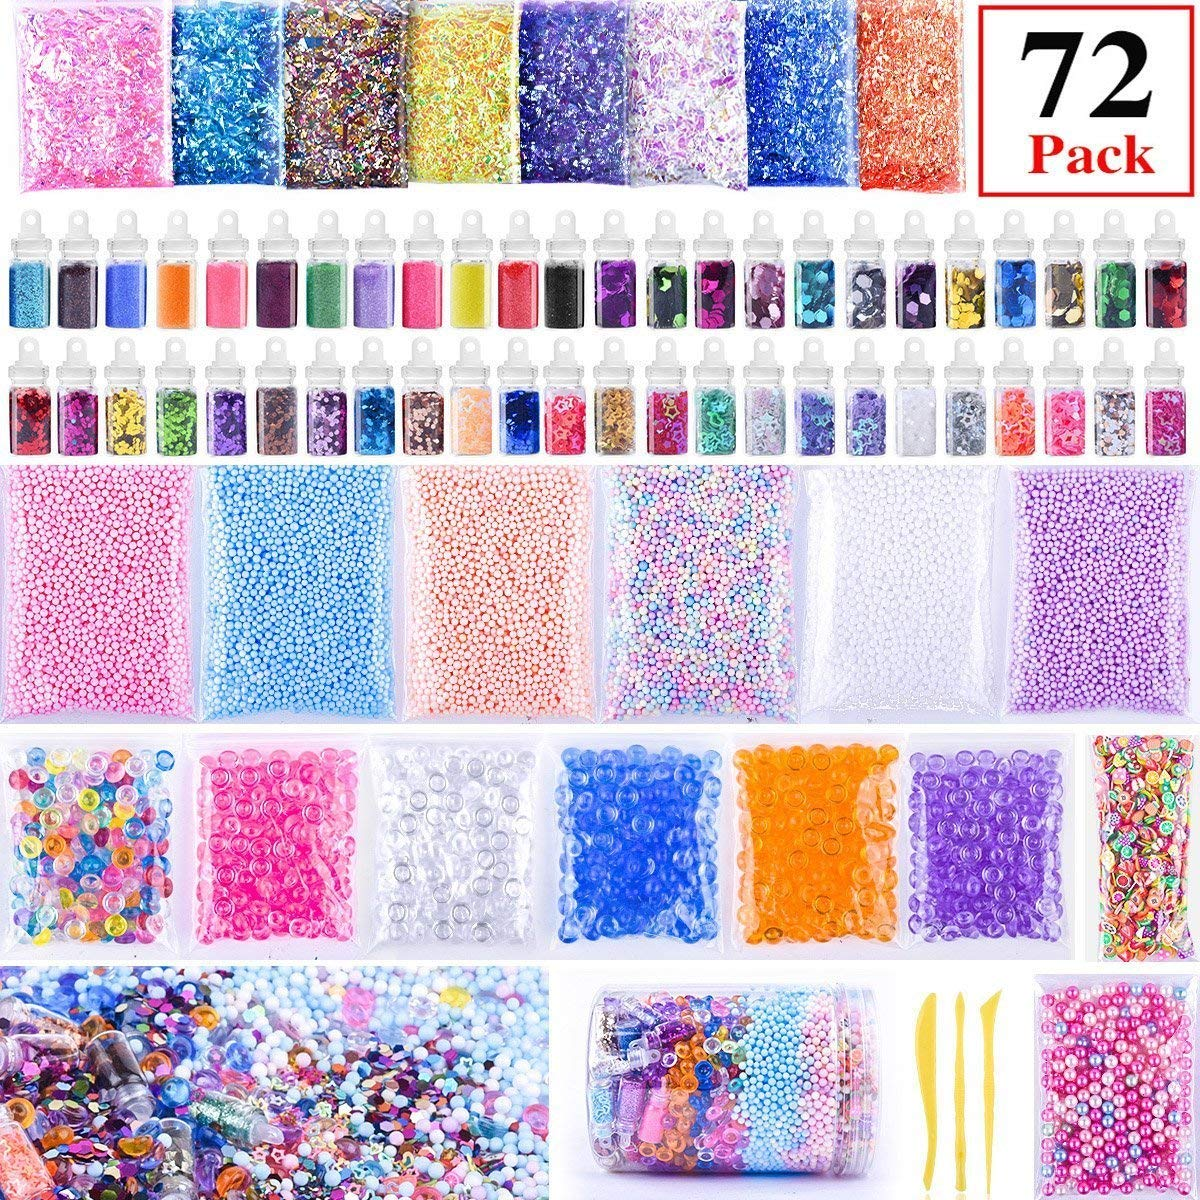 Slime Supplies Kit 72pack Environmental-protection ZHIQII Slime Beads Charms,Include Fishbowl beads,Foam Balls,Mixing Spoons Glitter Jars,Fruit Flower Animal Slices,Pearls,Slime Party DIY Slime Making